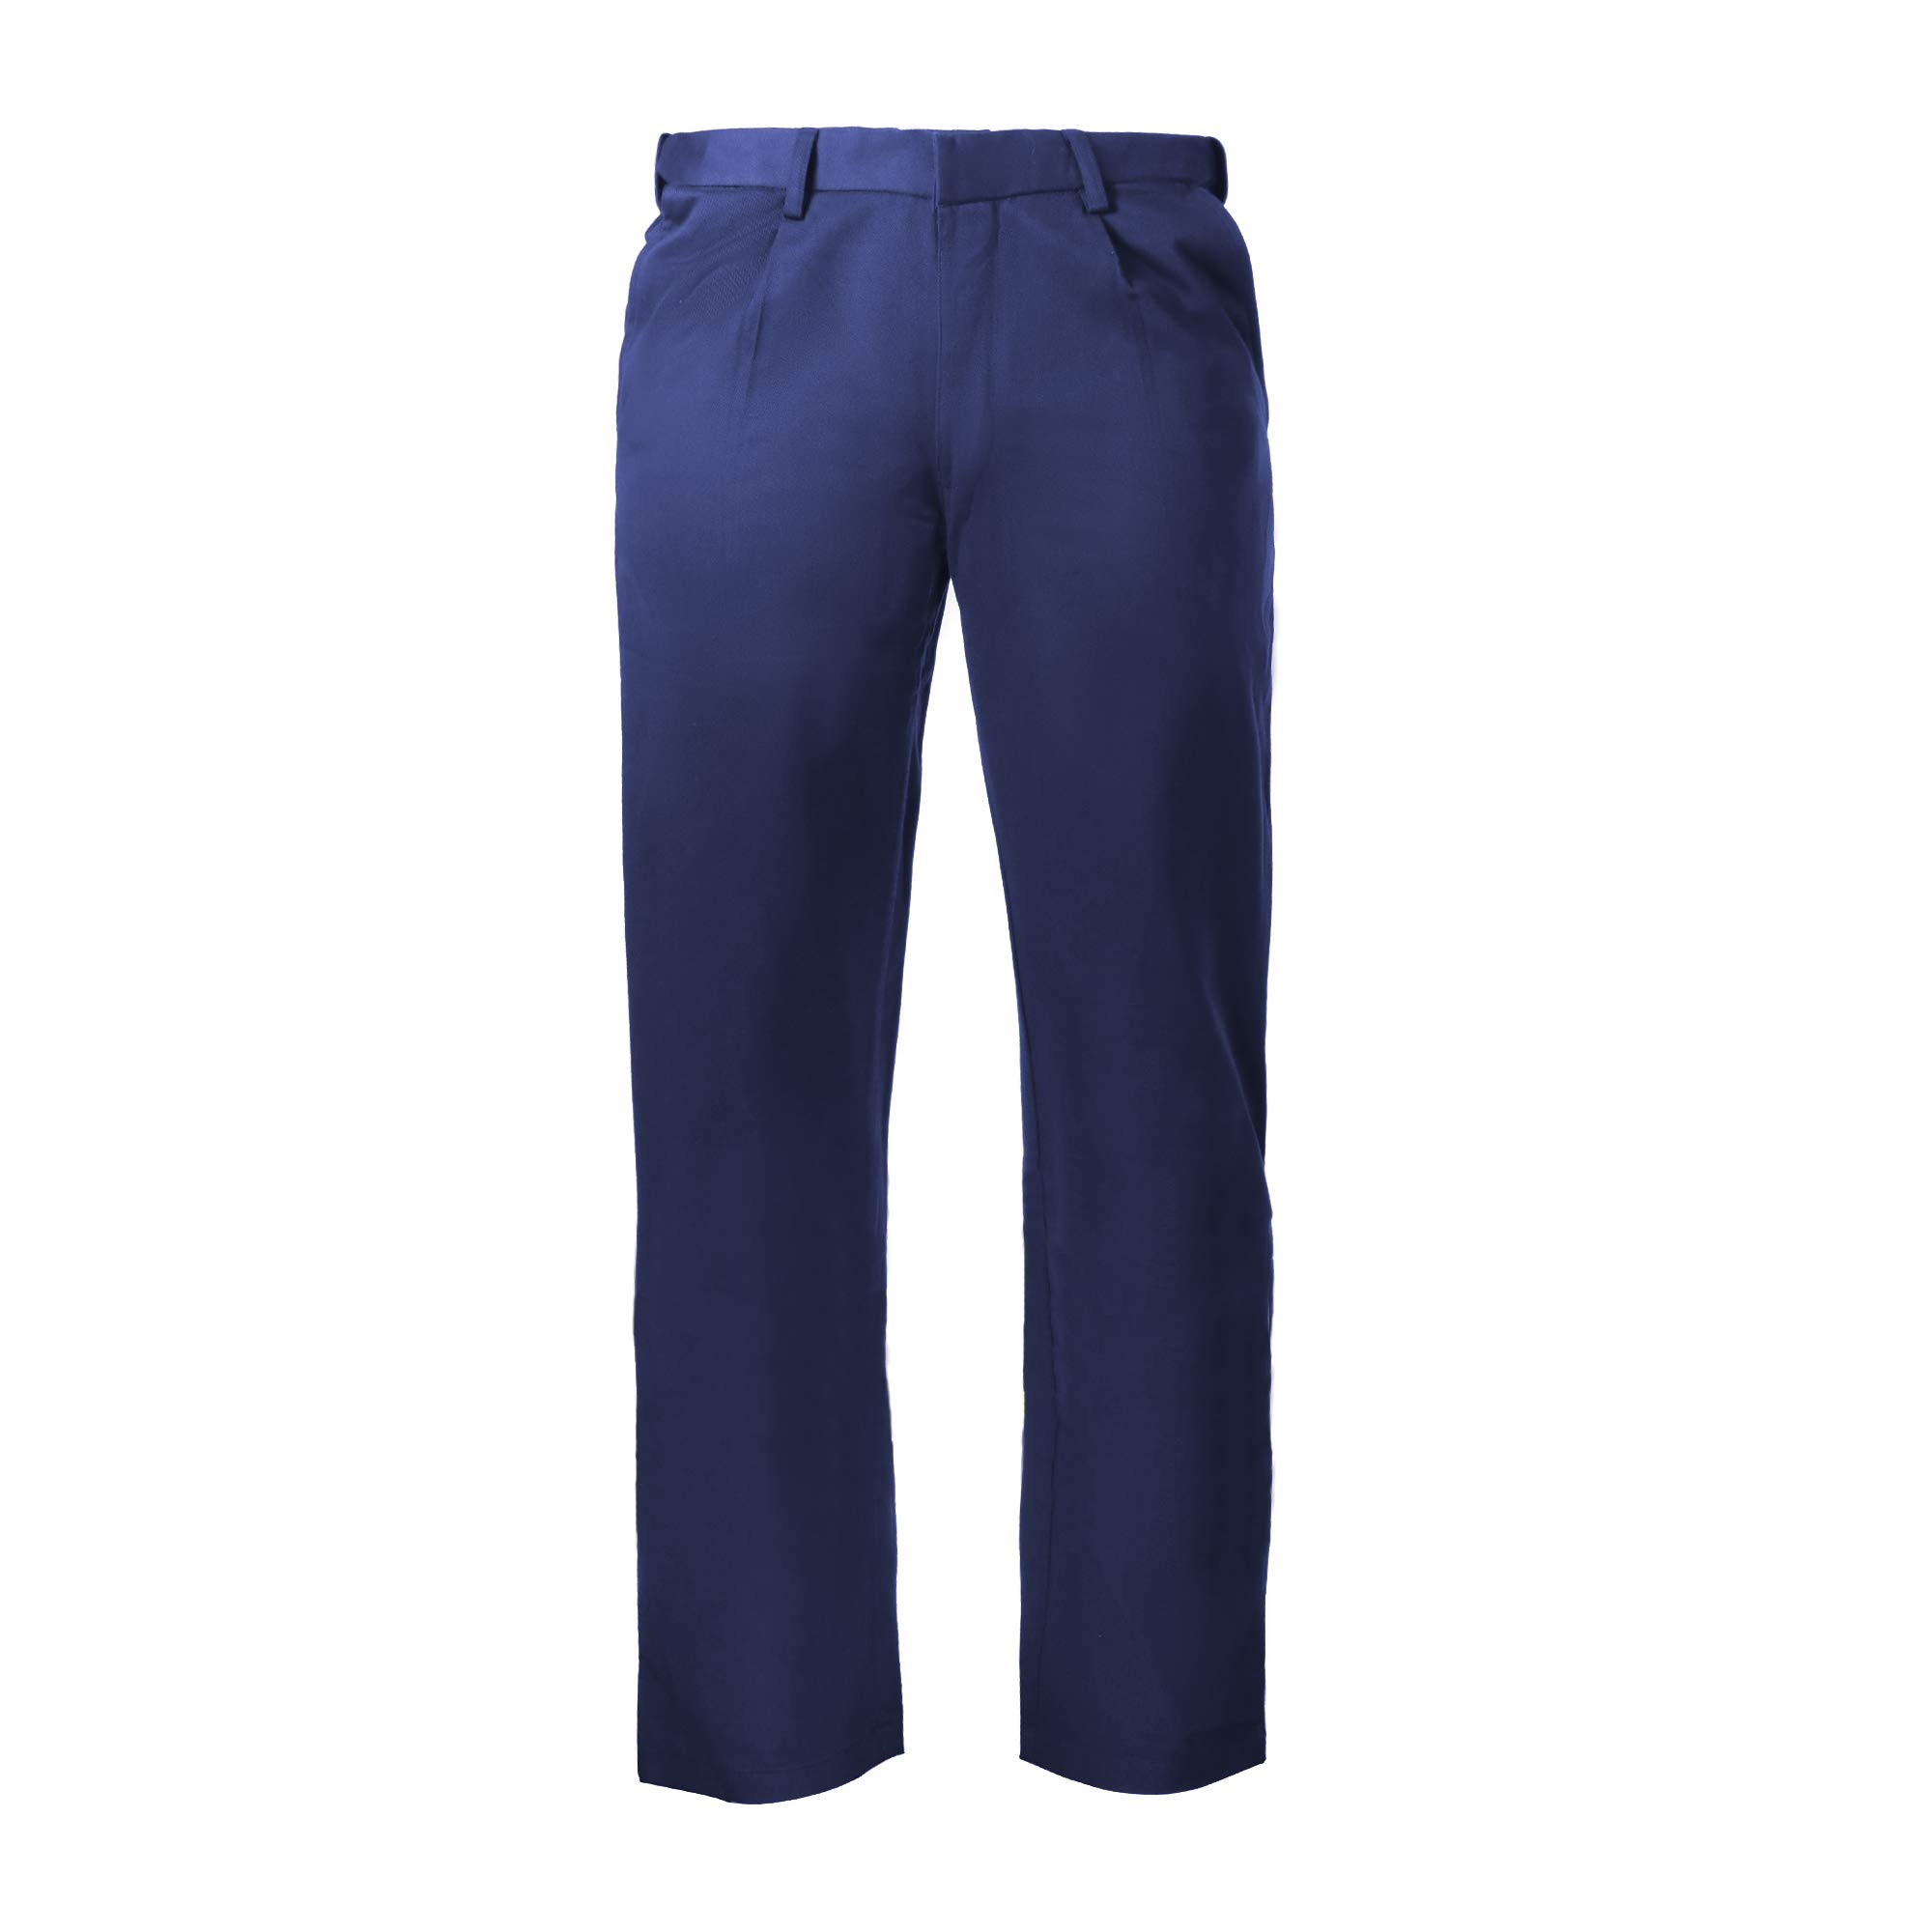 Flame Resistant FR 88% C/12% N Pant/Trouser (32W x 34L, Navy Blue) by Just In Trend (Image #1)